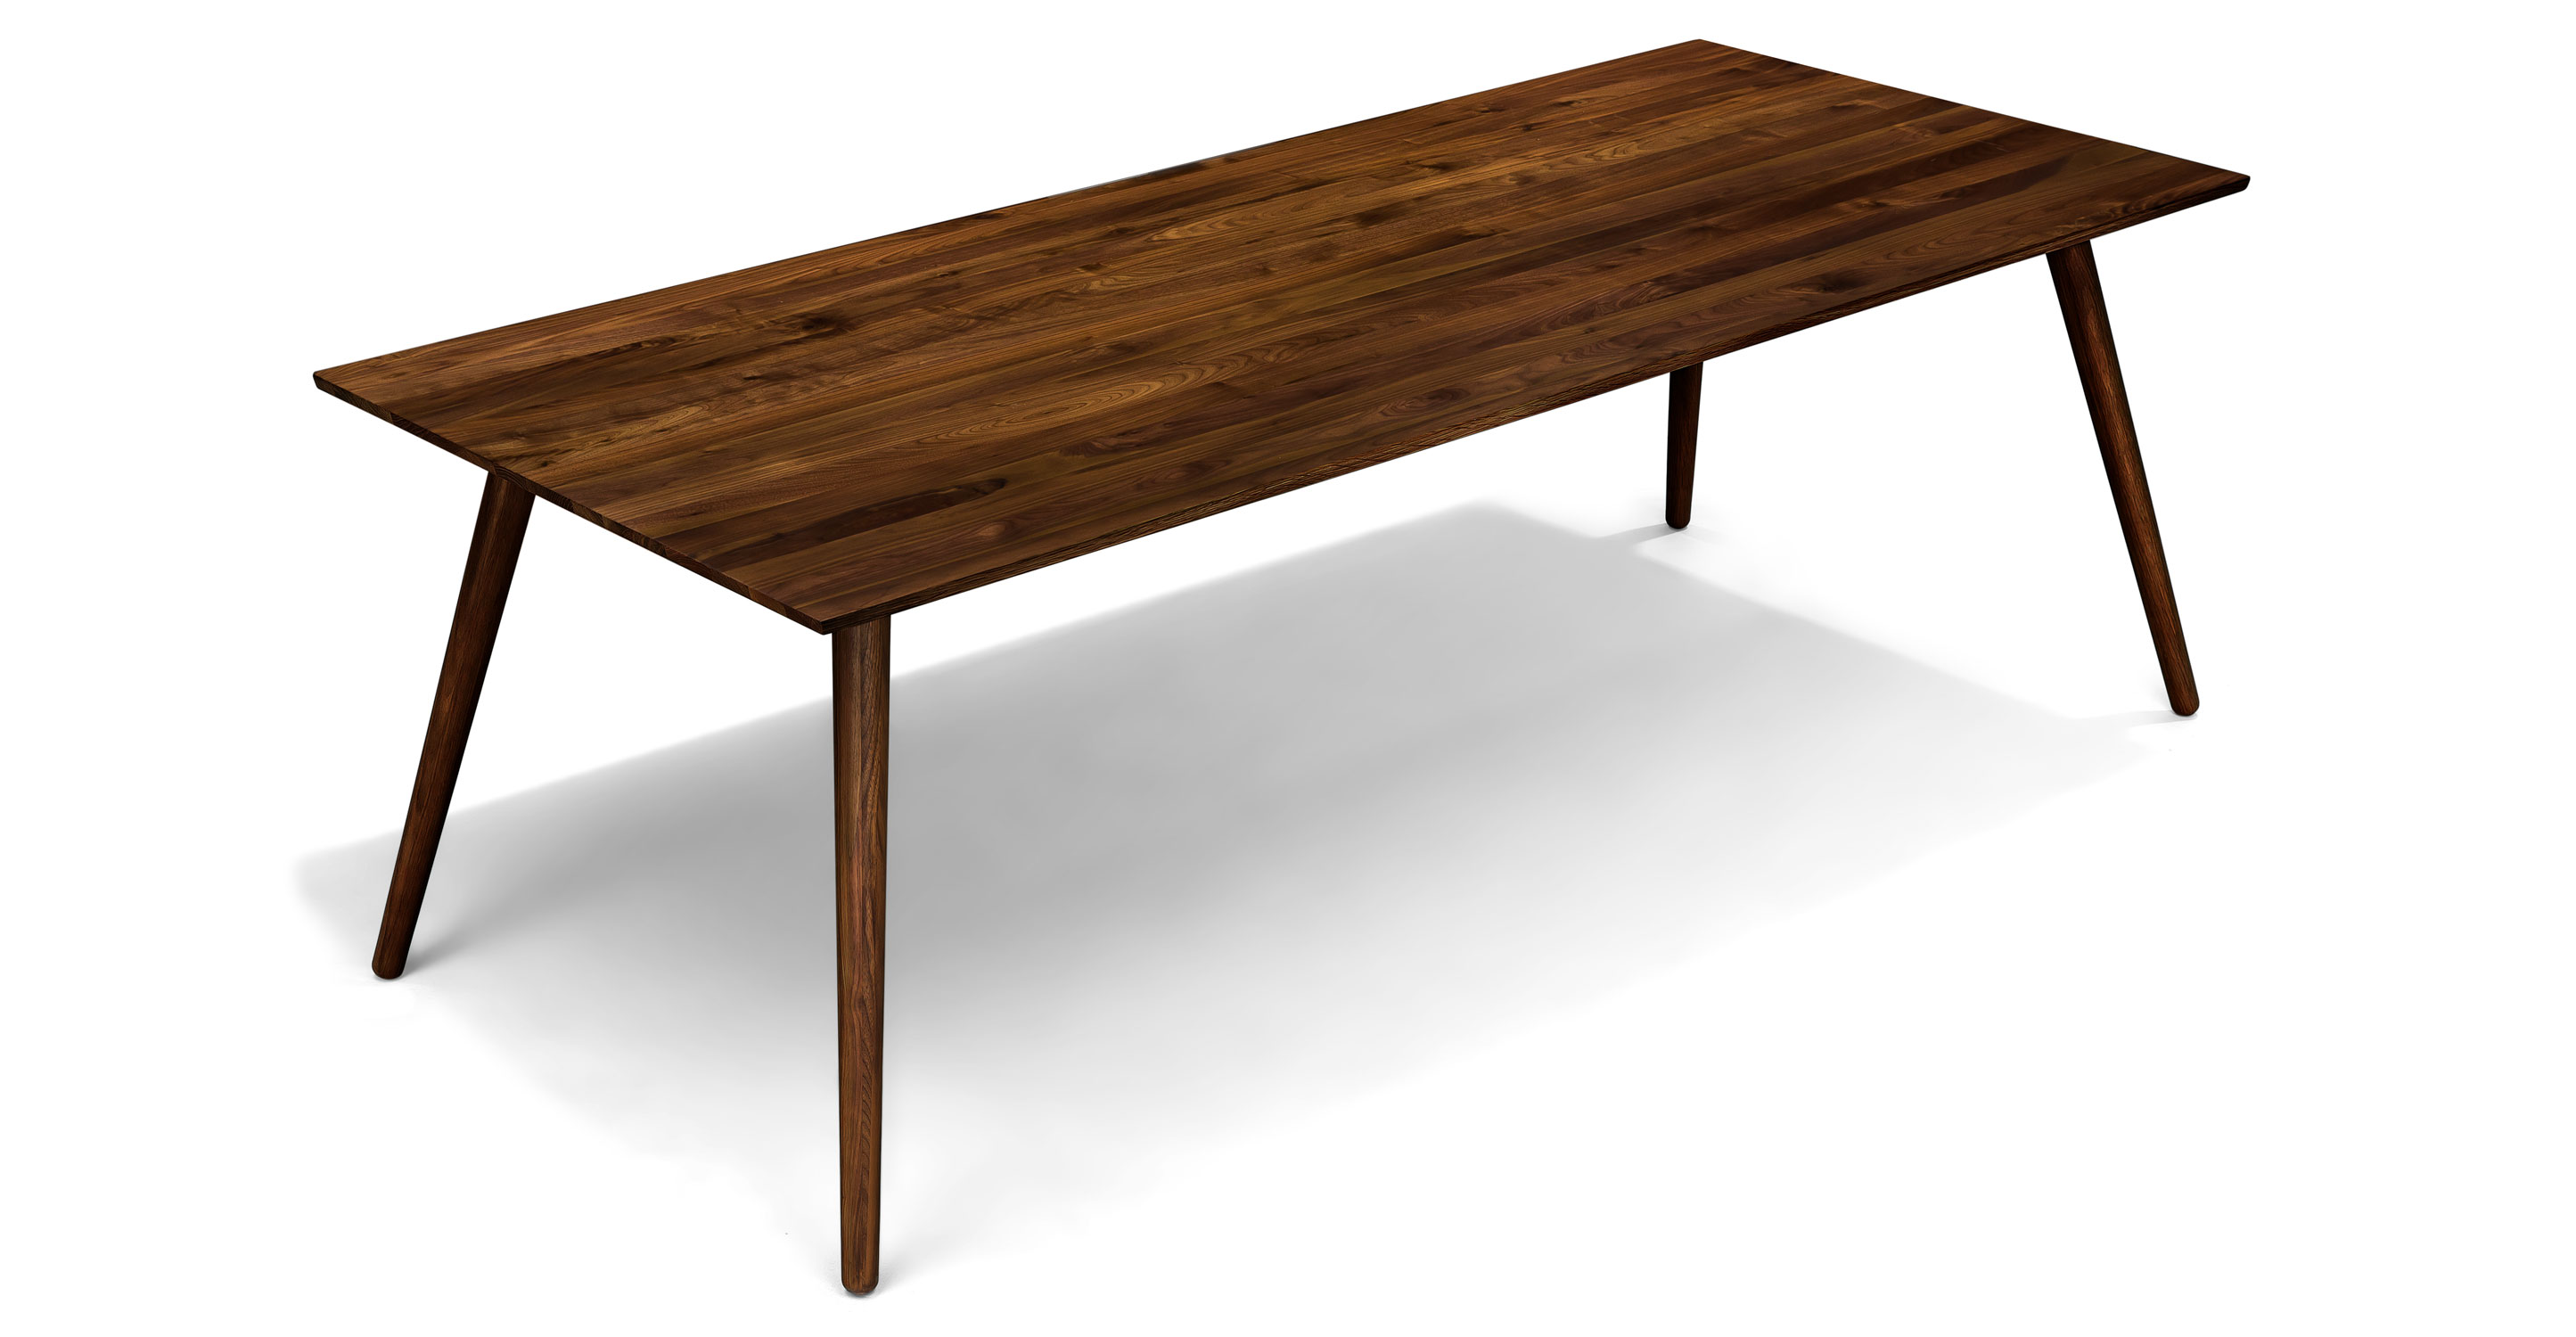 Seno Elongated Dining Table For Eight Costa Rican Furniture : phf2016 SENO ELONGATED DINING TABLE FOR EIGHT from www.pacifichomefurnishing.com size 2890 x 1500 jpeg 258kB